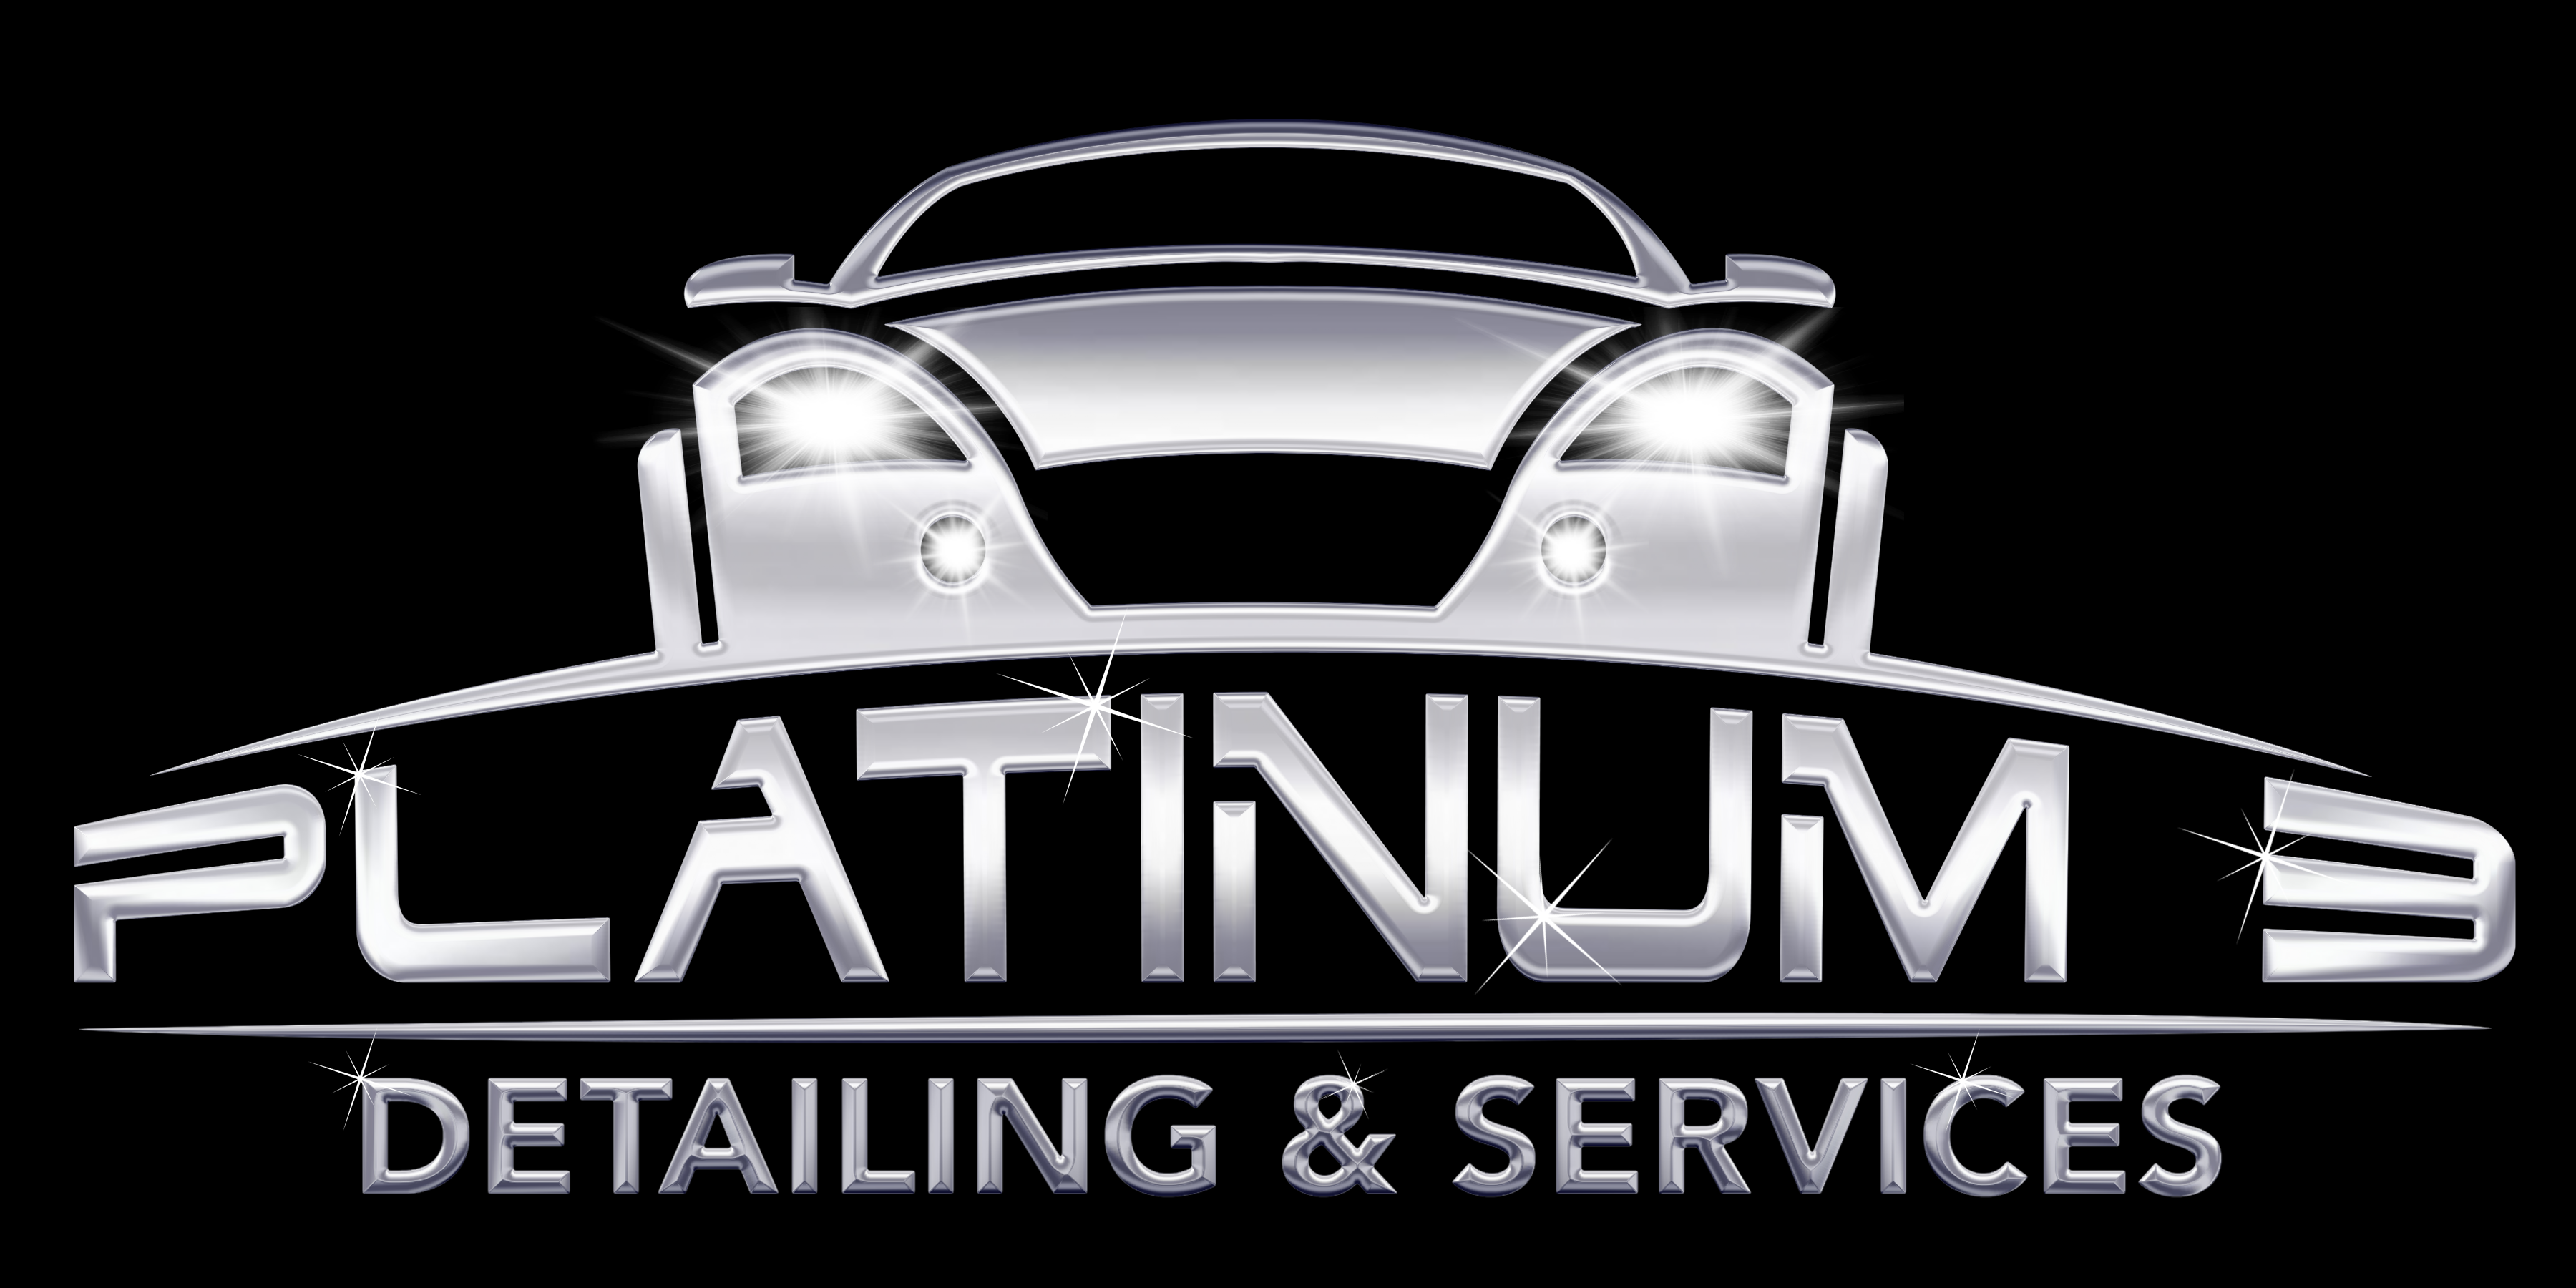 Platinum 3 Detailing Amp Services 5865 Ridgeway Center Pkwy